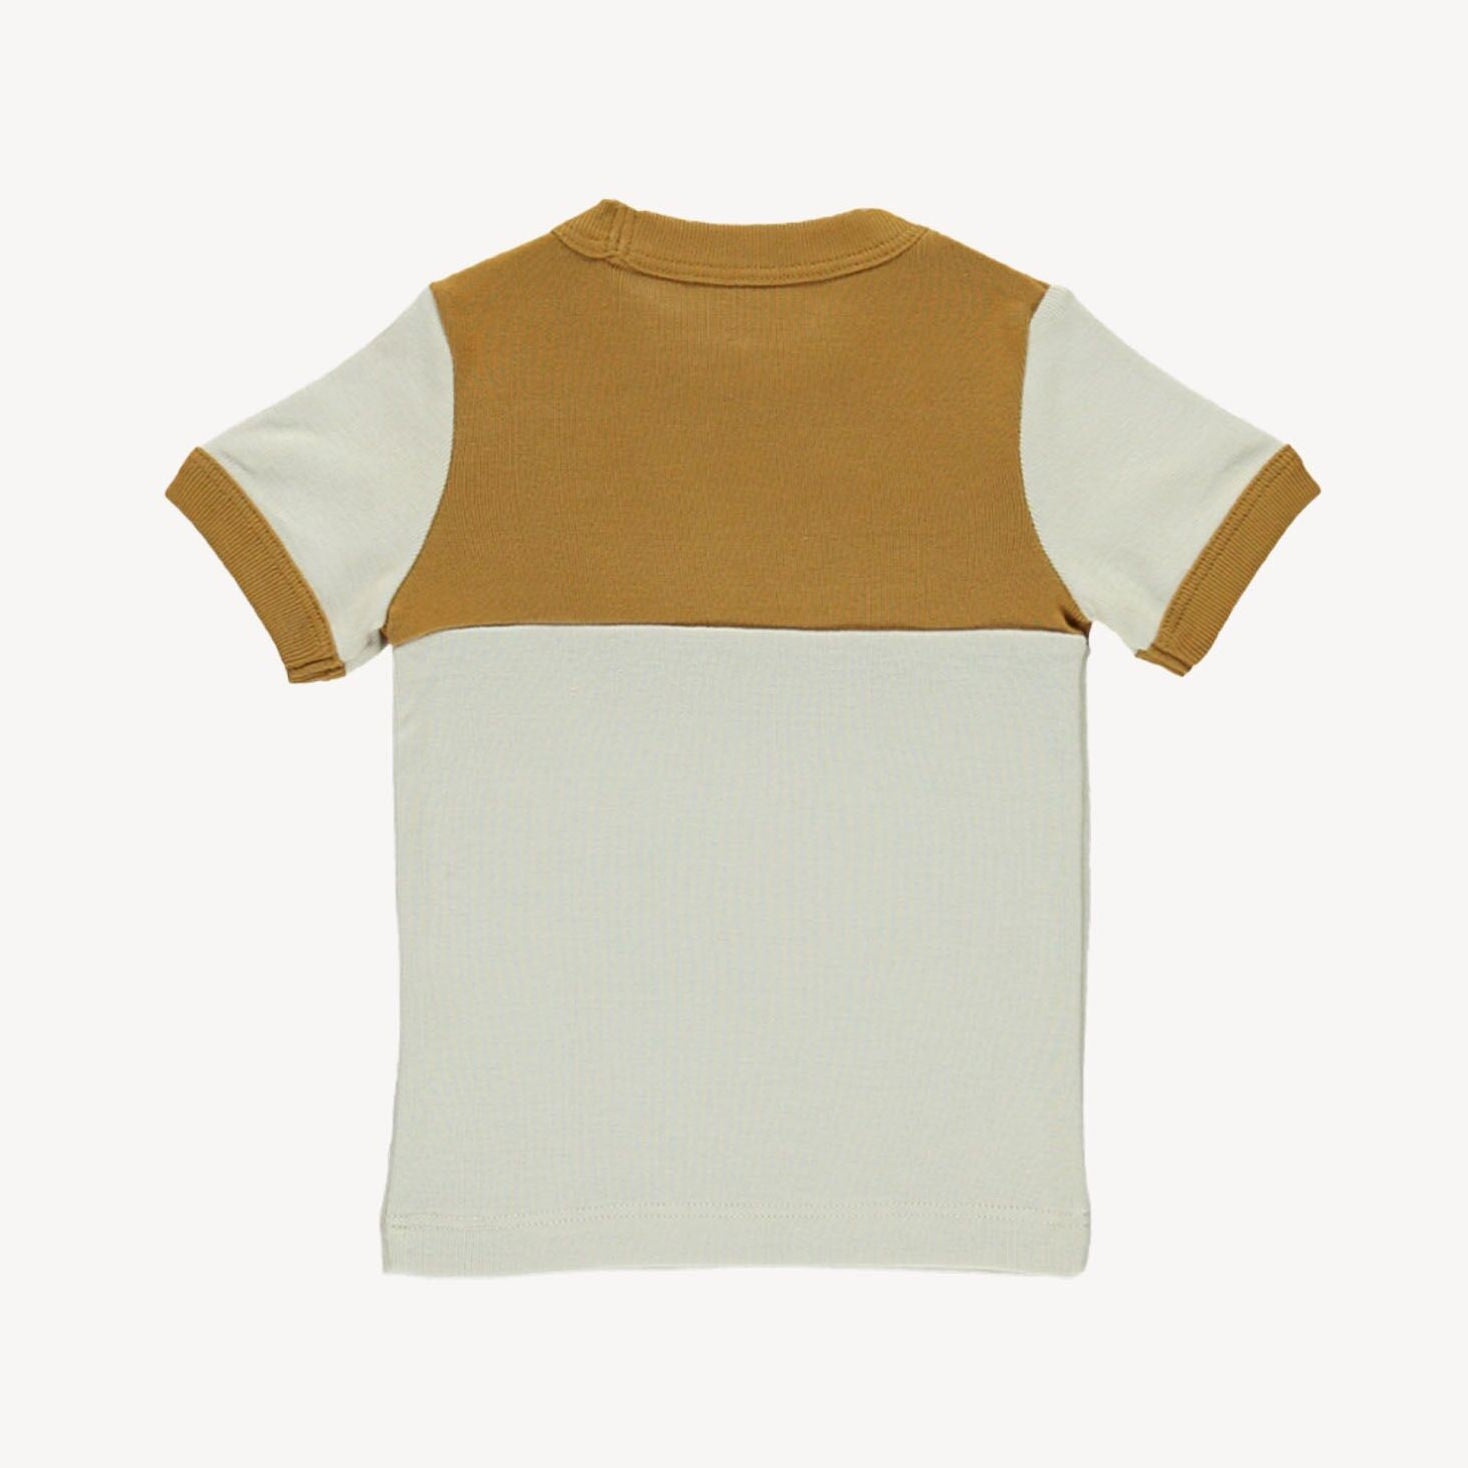 Fin and Vince Vintage Tee -Wheat